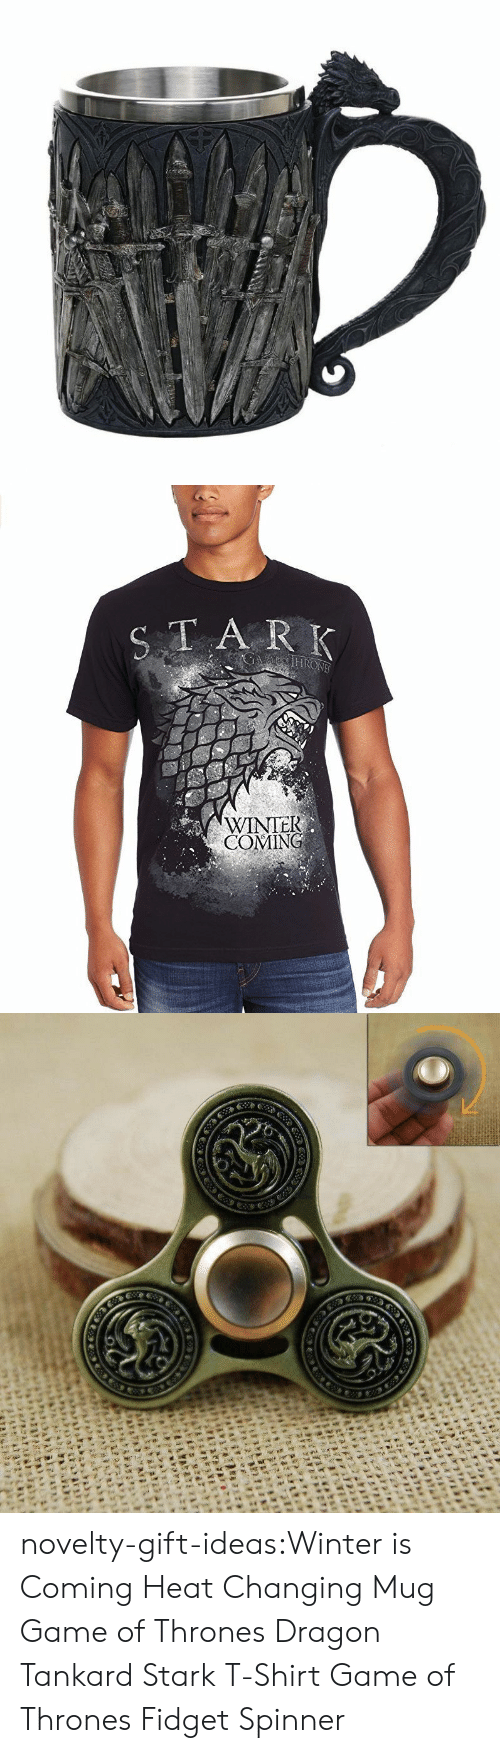 Game of Thrones, Tumblr, and Winter: TA R K  WINTEK  COMING novelty-gift-ideas:Winter is Coming Heat Changing Mug  Game of Thrones Dragon Tankard    Stark T-ShirtGame of Thrones Fidget Spinner